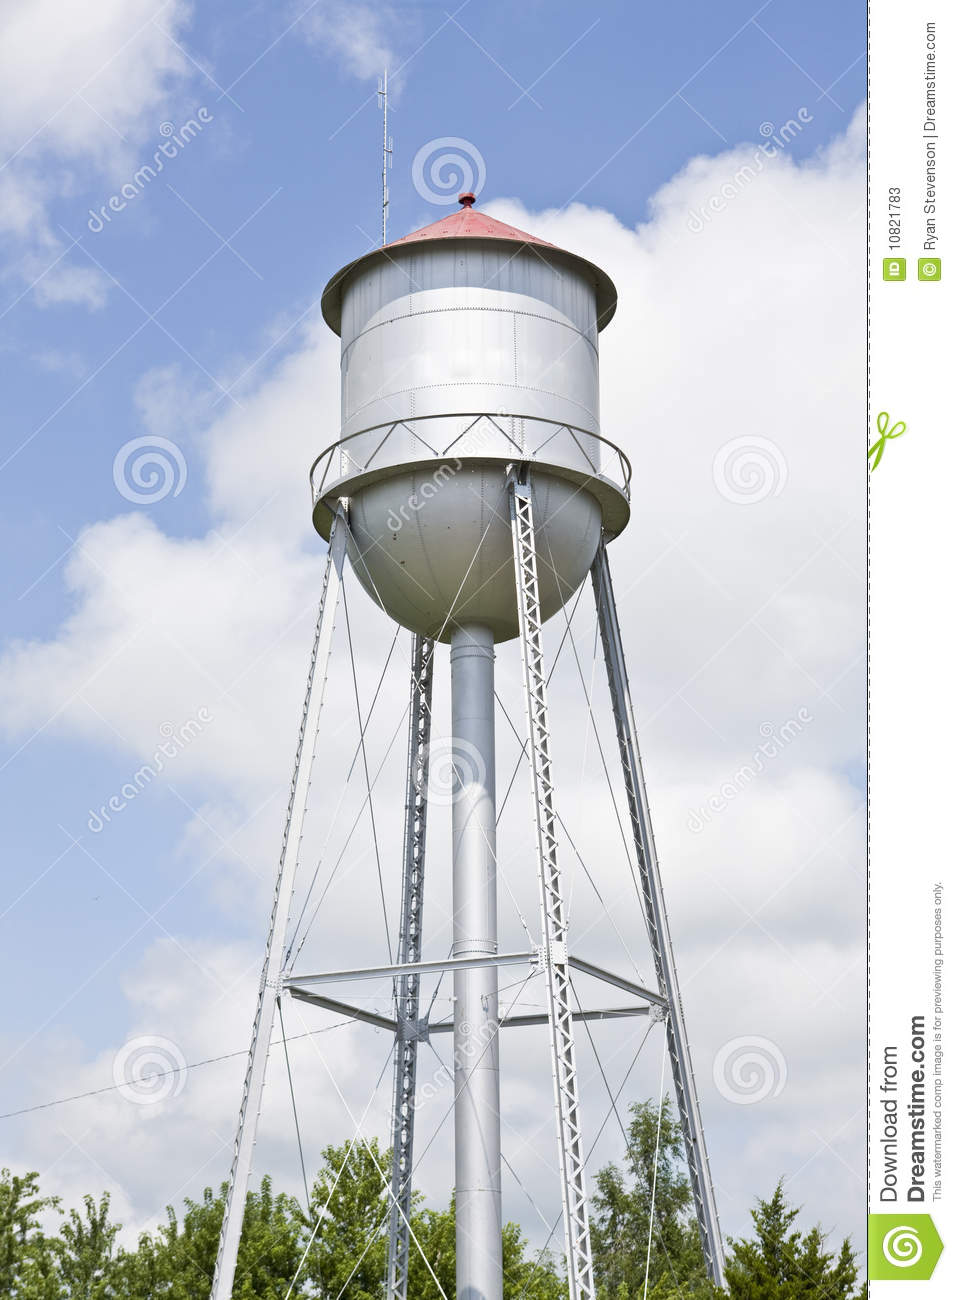 Water Tower Free Images At Clker Com Vector Clip Art Online.